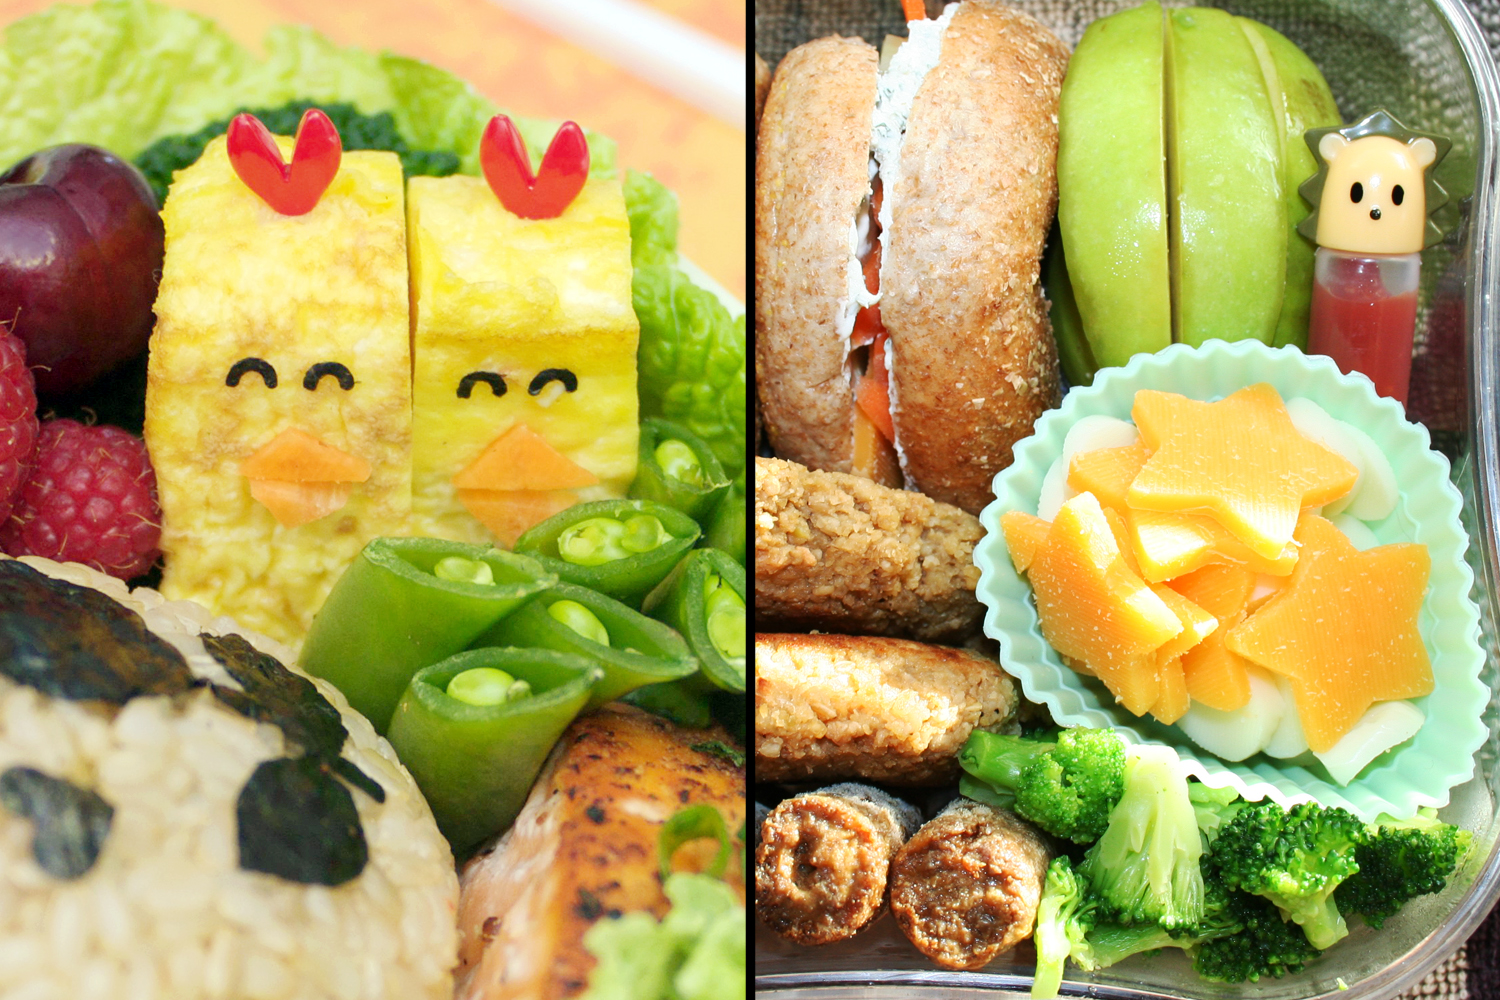 Bento box lunches with cute characters and fun shapes help make lunch extra special. And, since they're zero-waste, bentos an eco-friendly way to make school lunches. (Photos via Flickr.com)